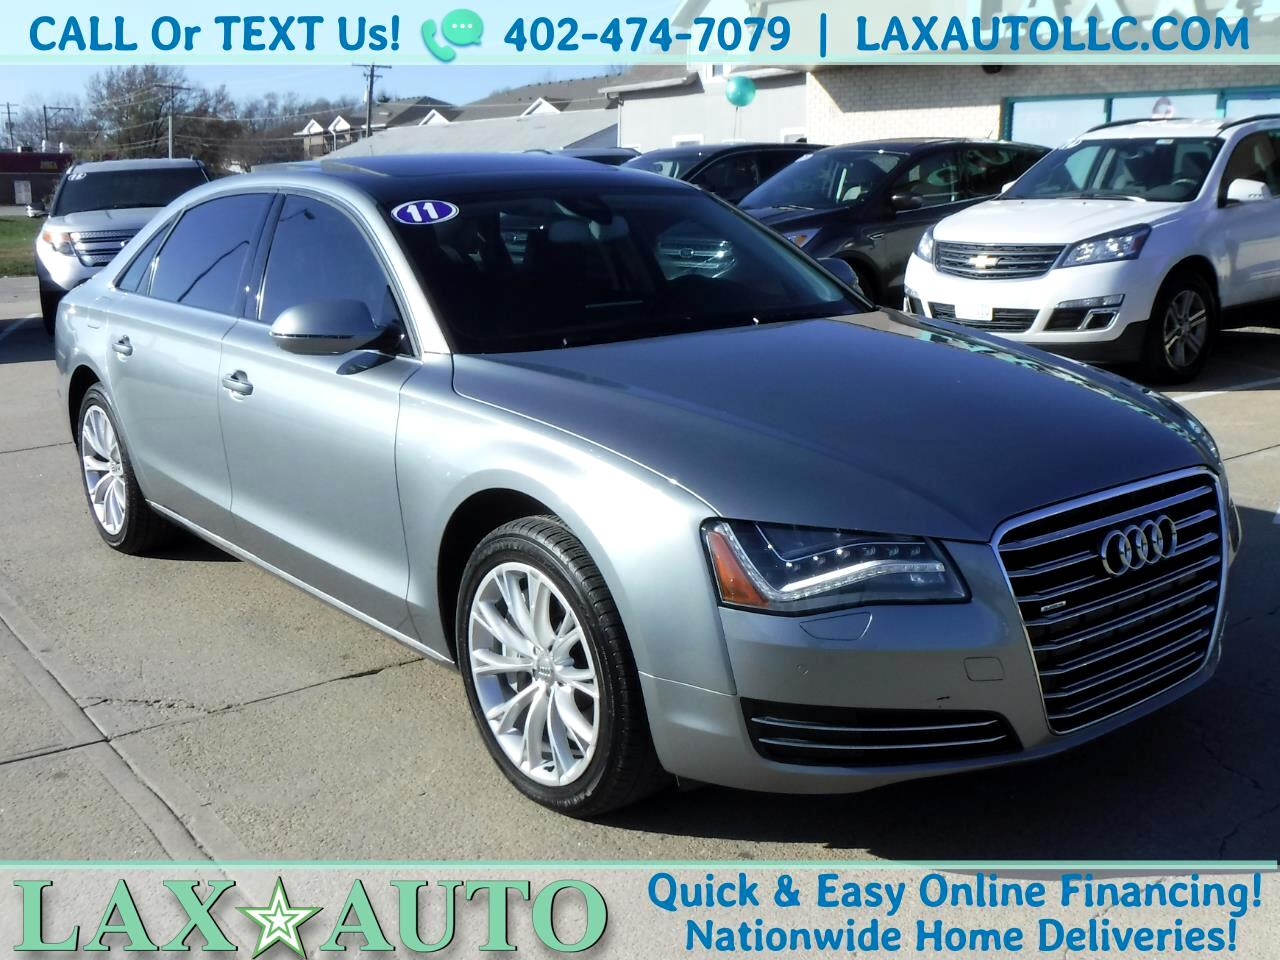 2011 Audi A8 L Quattro AWD * 44k Miles! Navi! Panorama Roof!